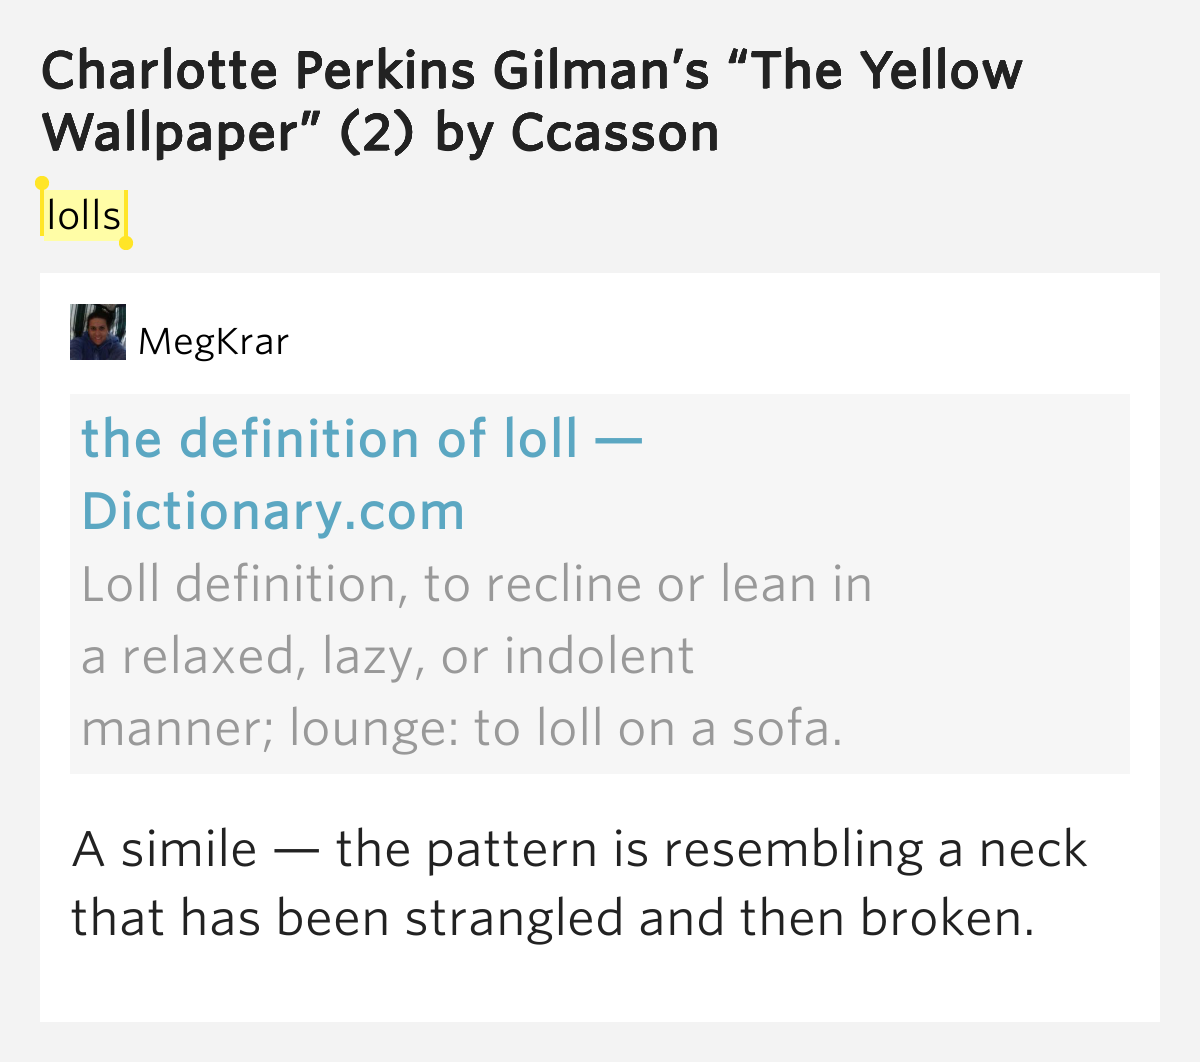 symbolism in the yellow wallpaper by charlotte perkins gilman In the short story, the yellow wallpaper by charlotte perkins gilman, there are  several examples of symbolism in a story that seems to be.